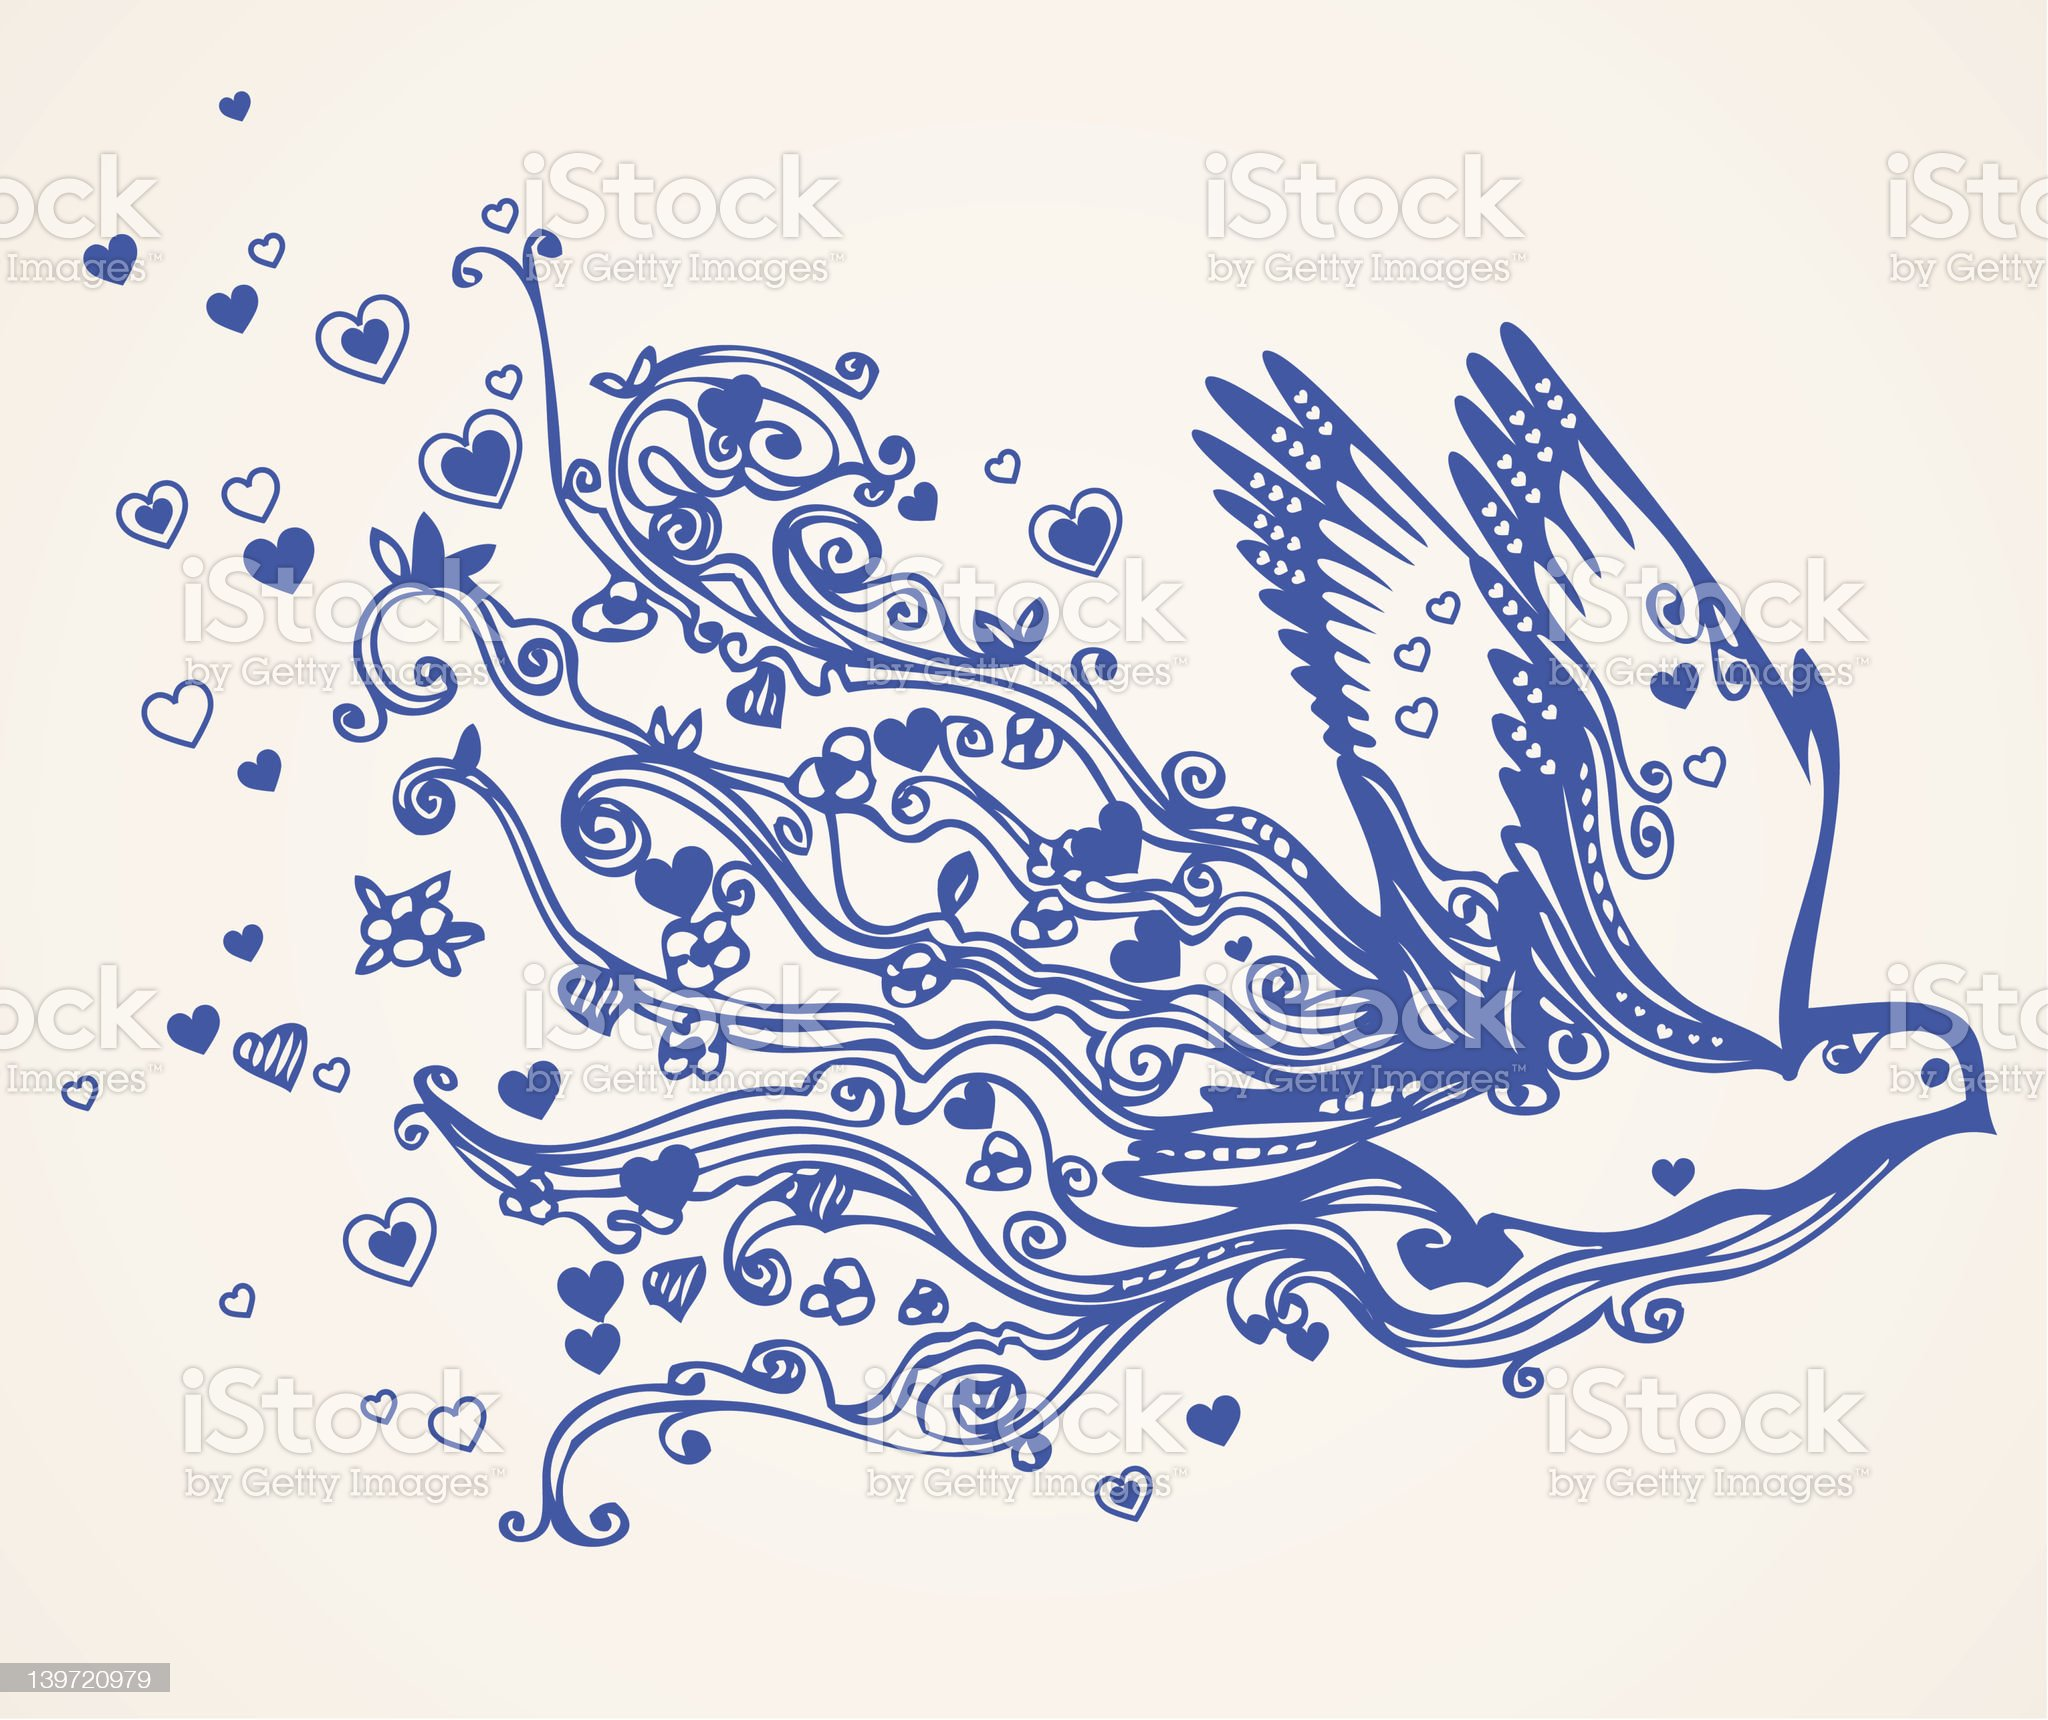 Hand drawn floral flying bird of love and peace royalty-free stock vector art